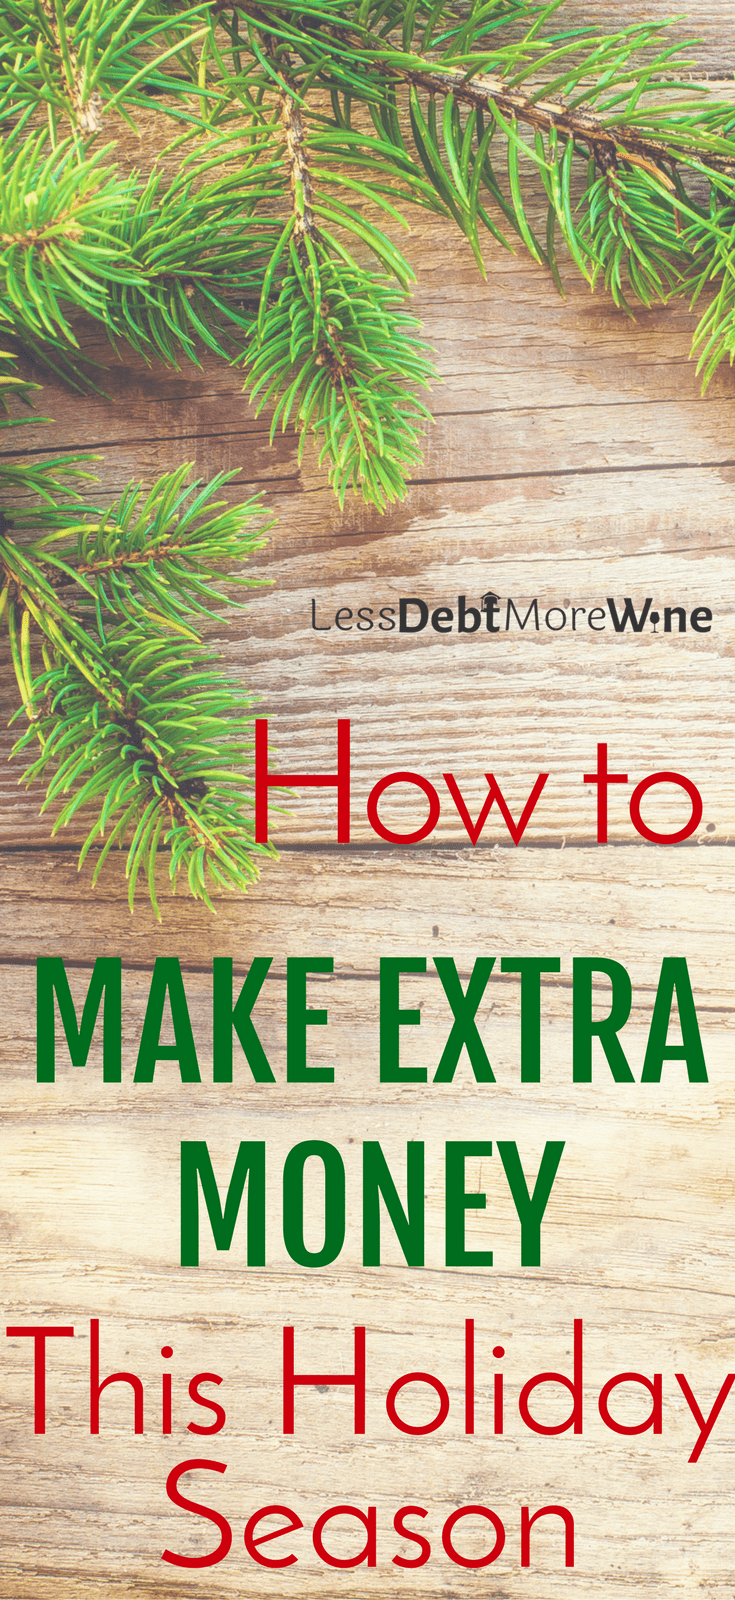 make extra money this holiday season   side hustles   earn more money for holidays